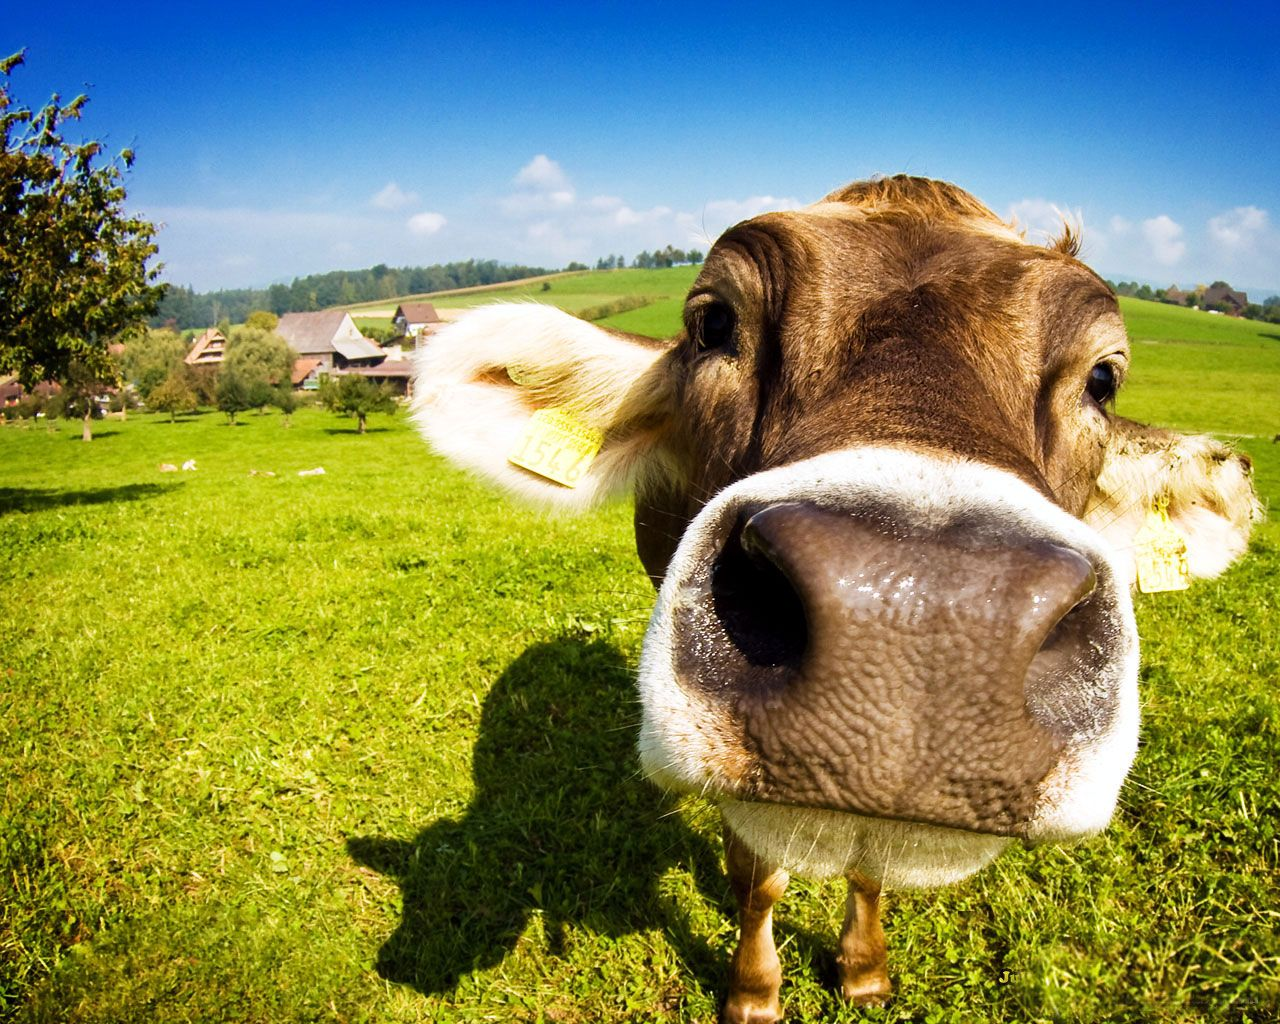 funny+jokes+pictures Read Online Free Funny Cow Cows